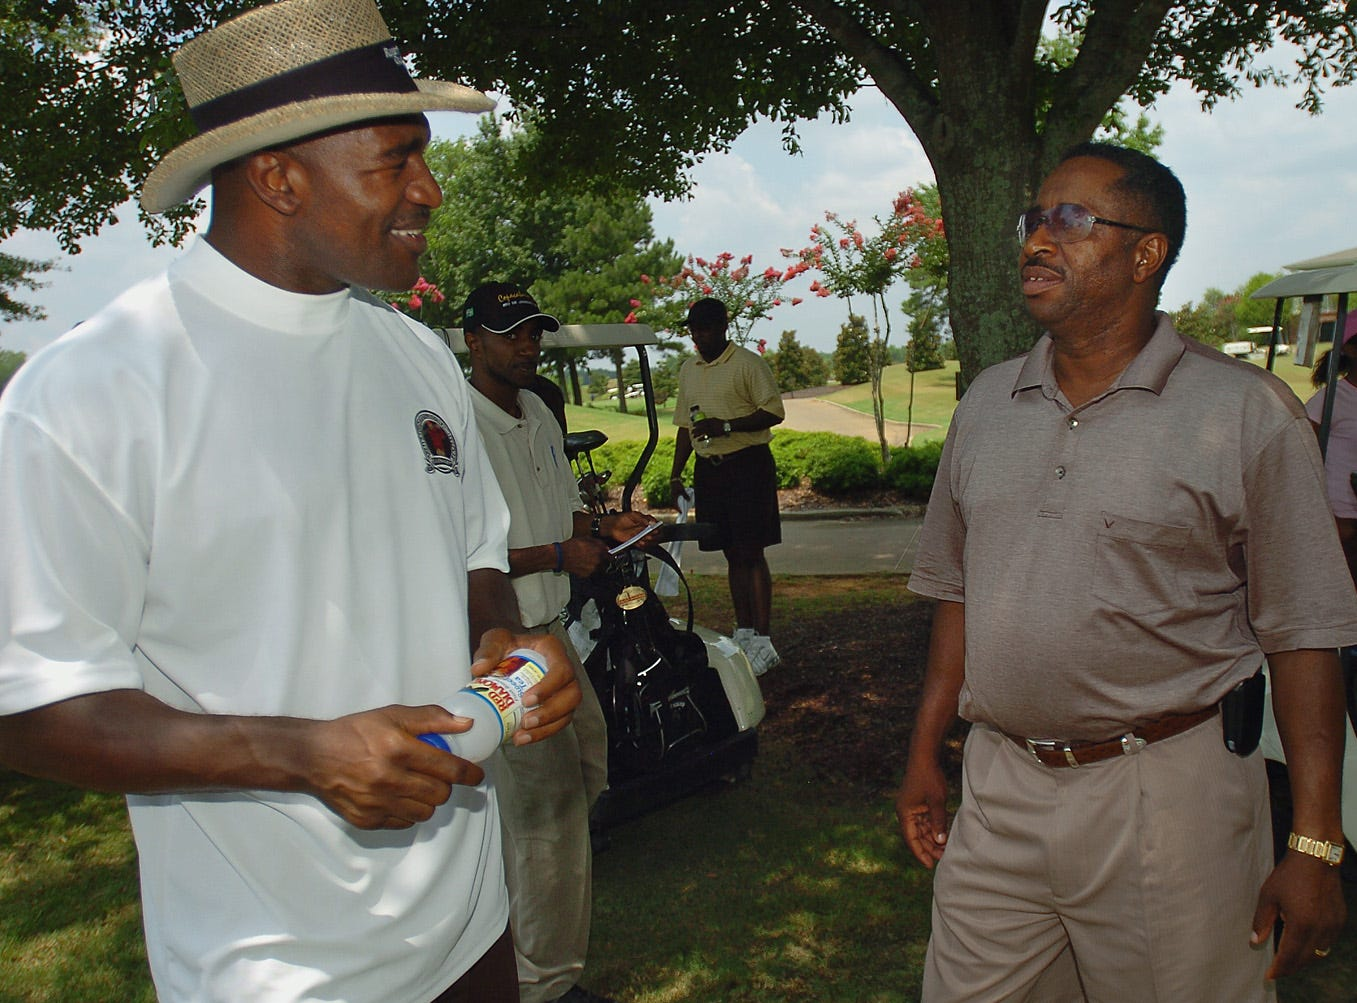 Four-time Heavyweight Champion Evander Holyfield, left, talks with Greg Calhoun while participating in the Greg Calhoun Golf Tournament Monday, June 26, 2006 at Capitol Hill Golf Course in Prattville, Ala. (Montgomery Advertiser, Karen S. Doerr)